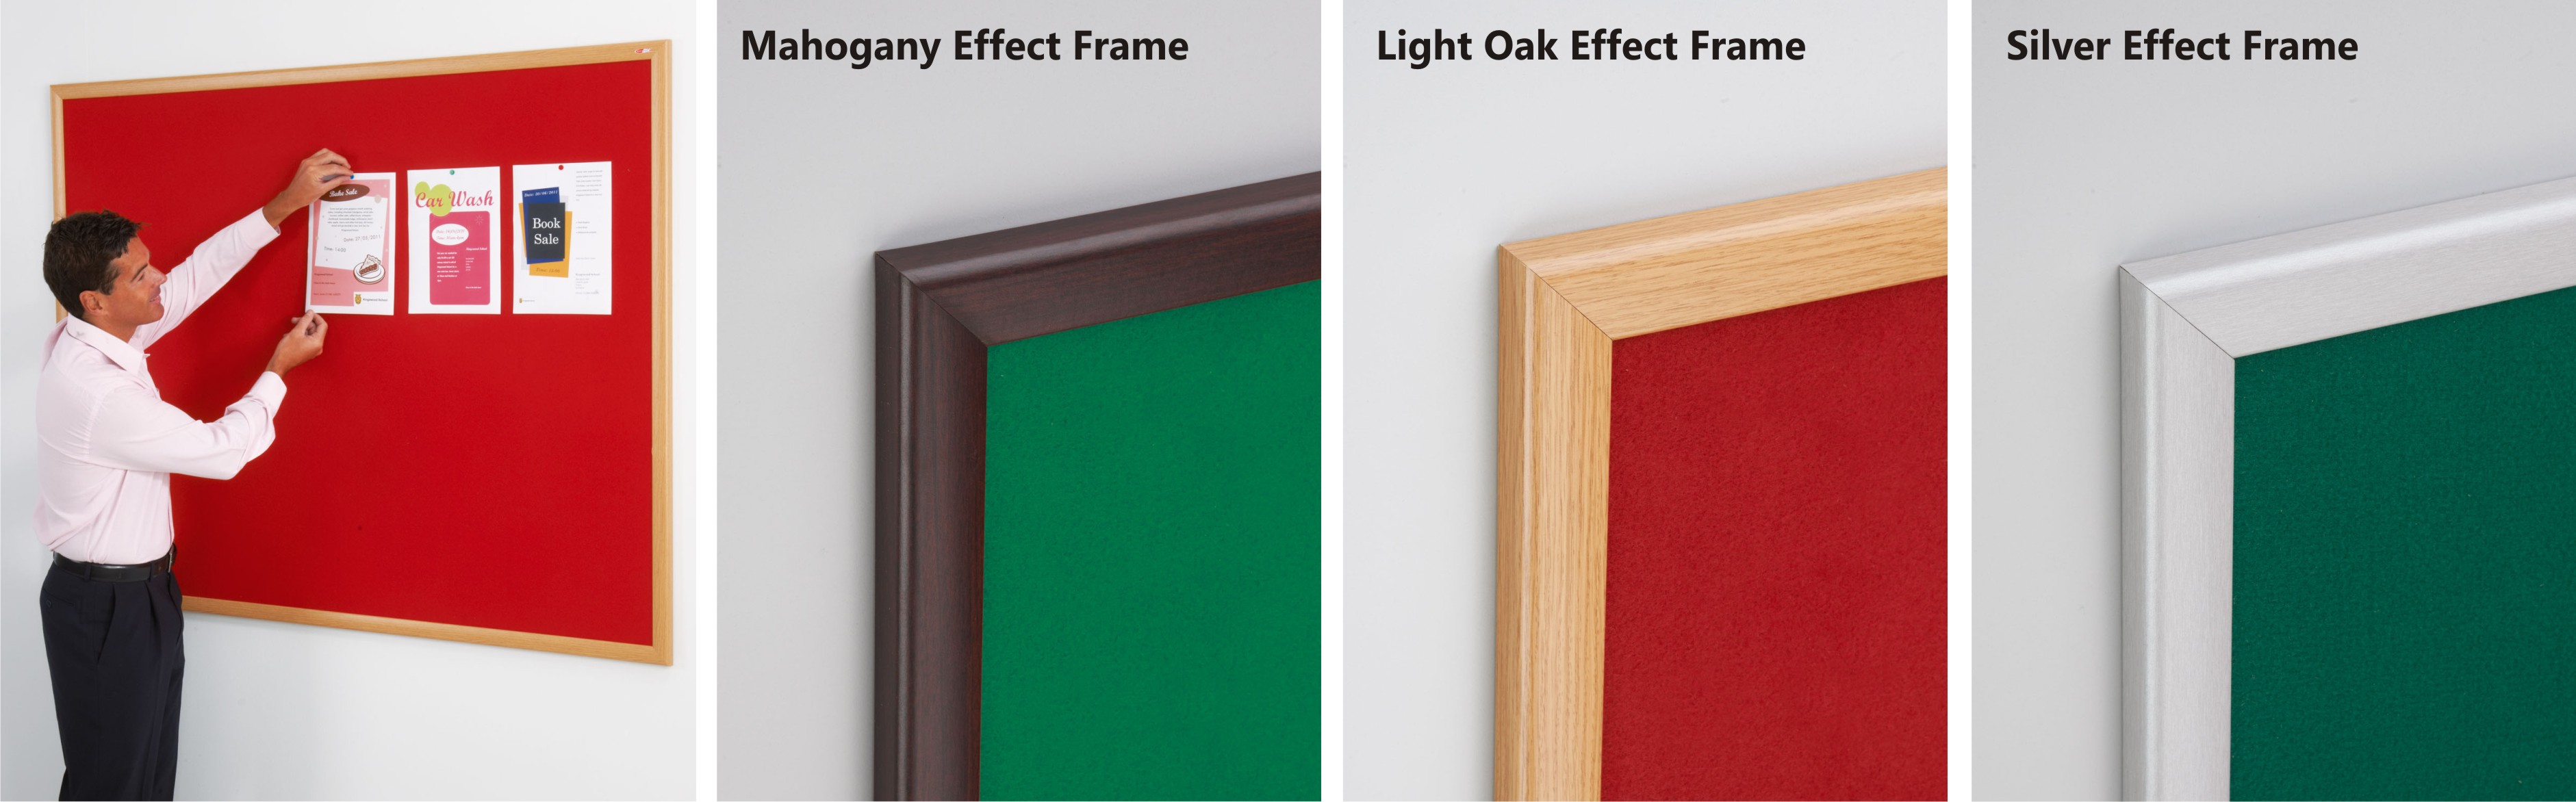 Eco-Friendly Wood Framed Felt Noticeboards